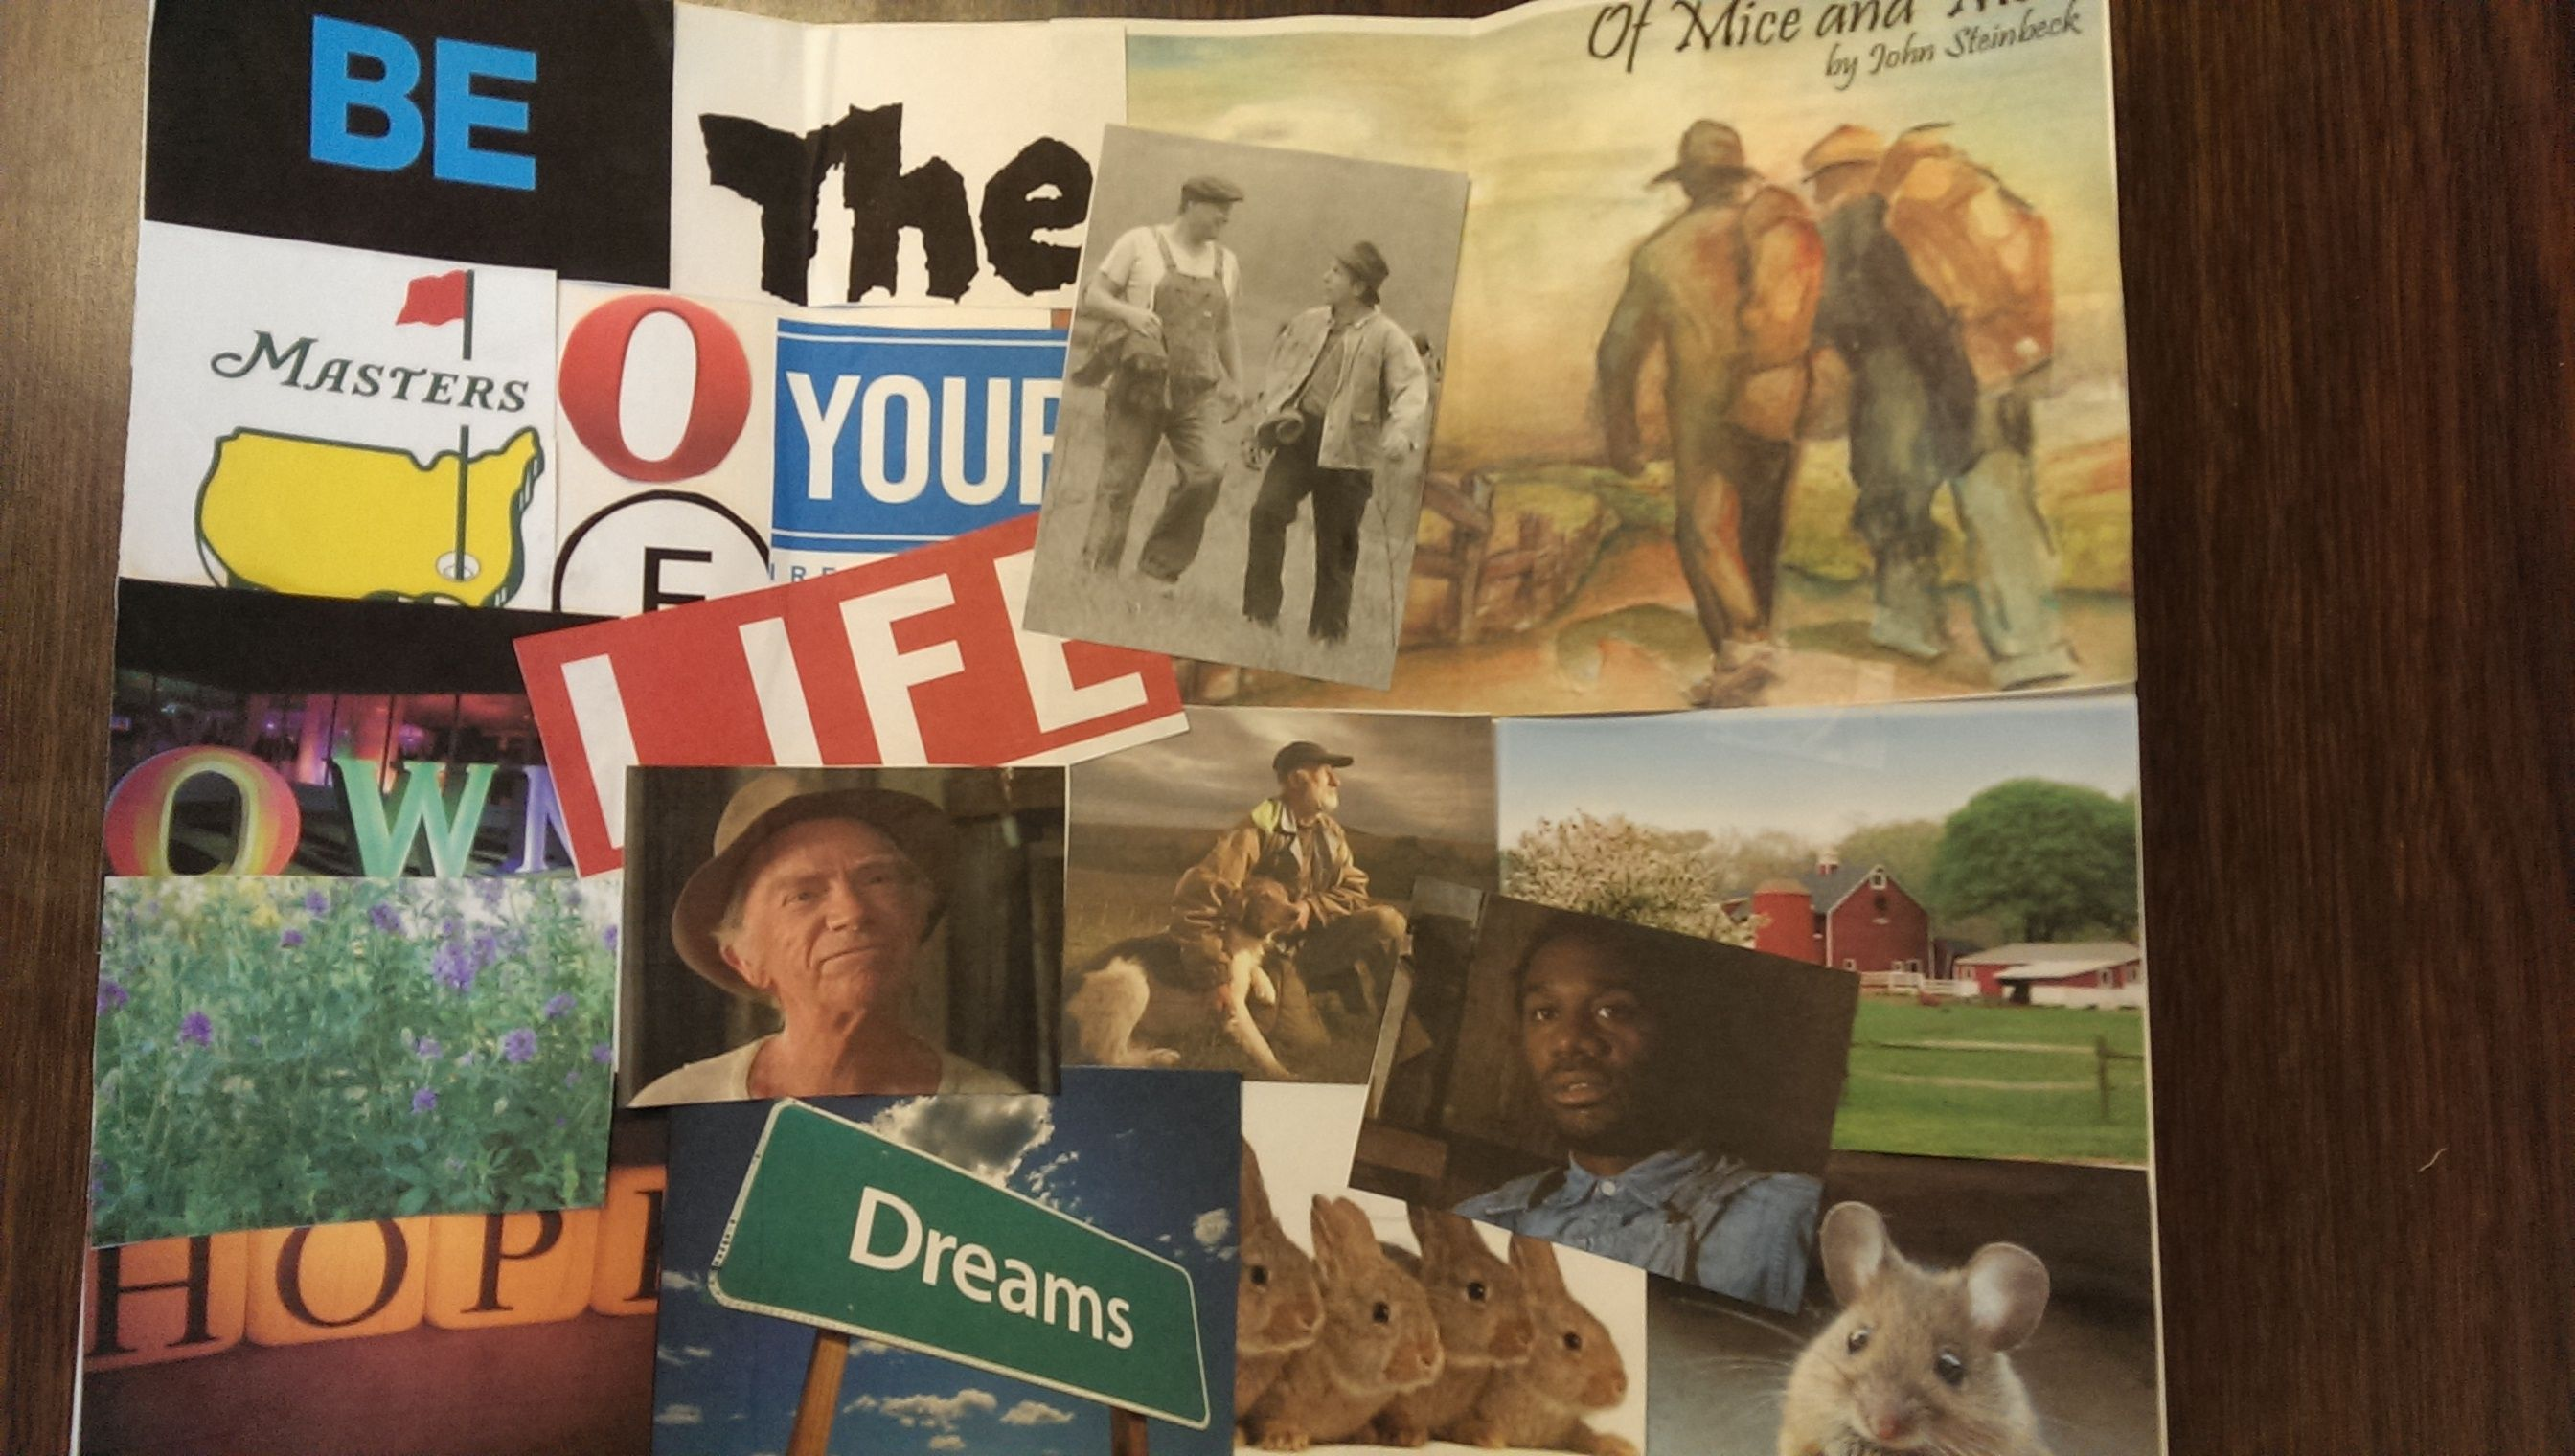 Of Mice And Men Project Create A Collage That Captures One Important Aspect Of The Story This Collage Focuse Of Mice And Men Man Projects 11th Grade English